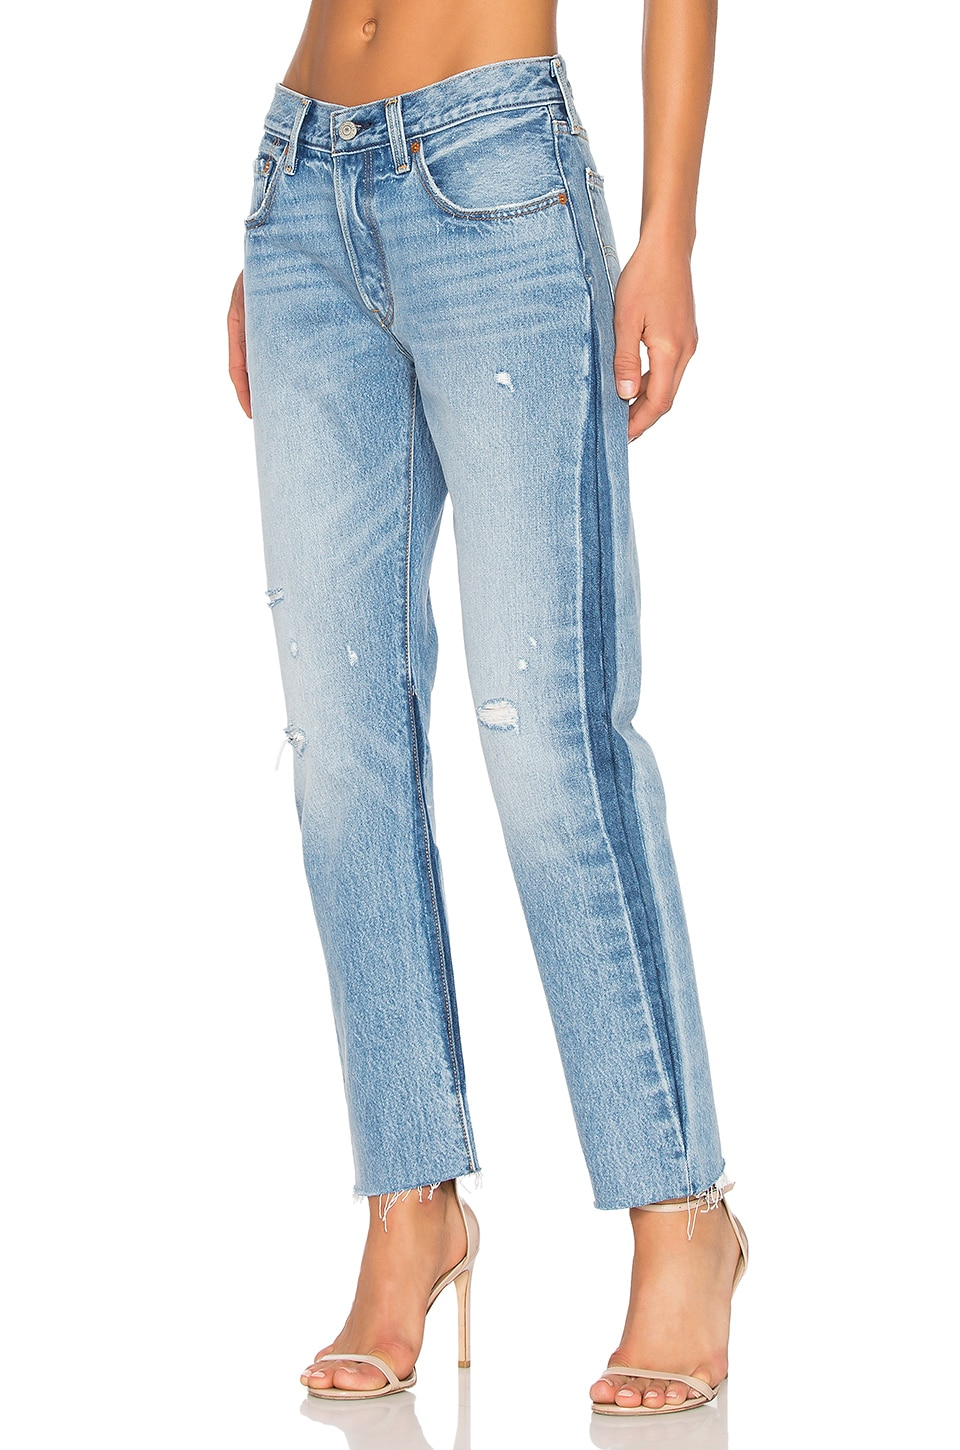 LEVI'S 501 Crop in You Pretty Thing